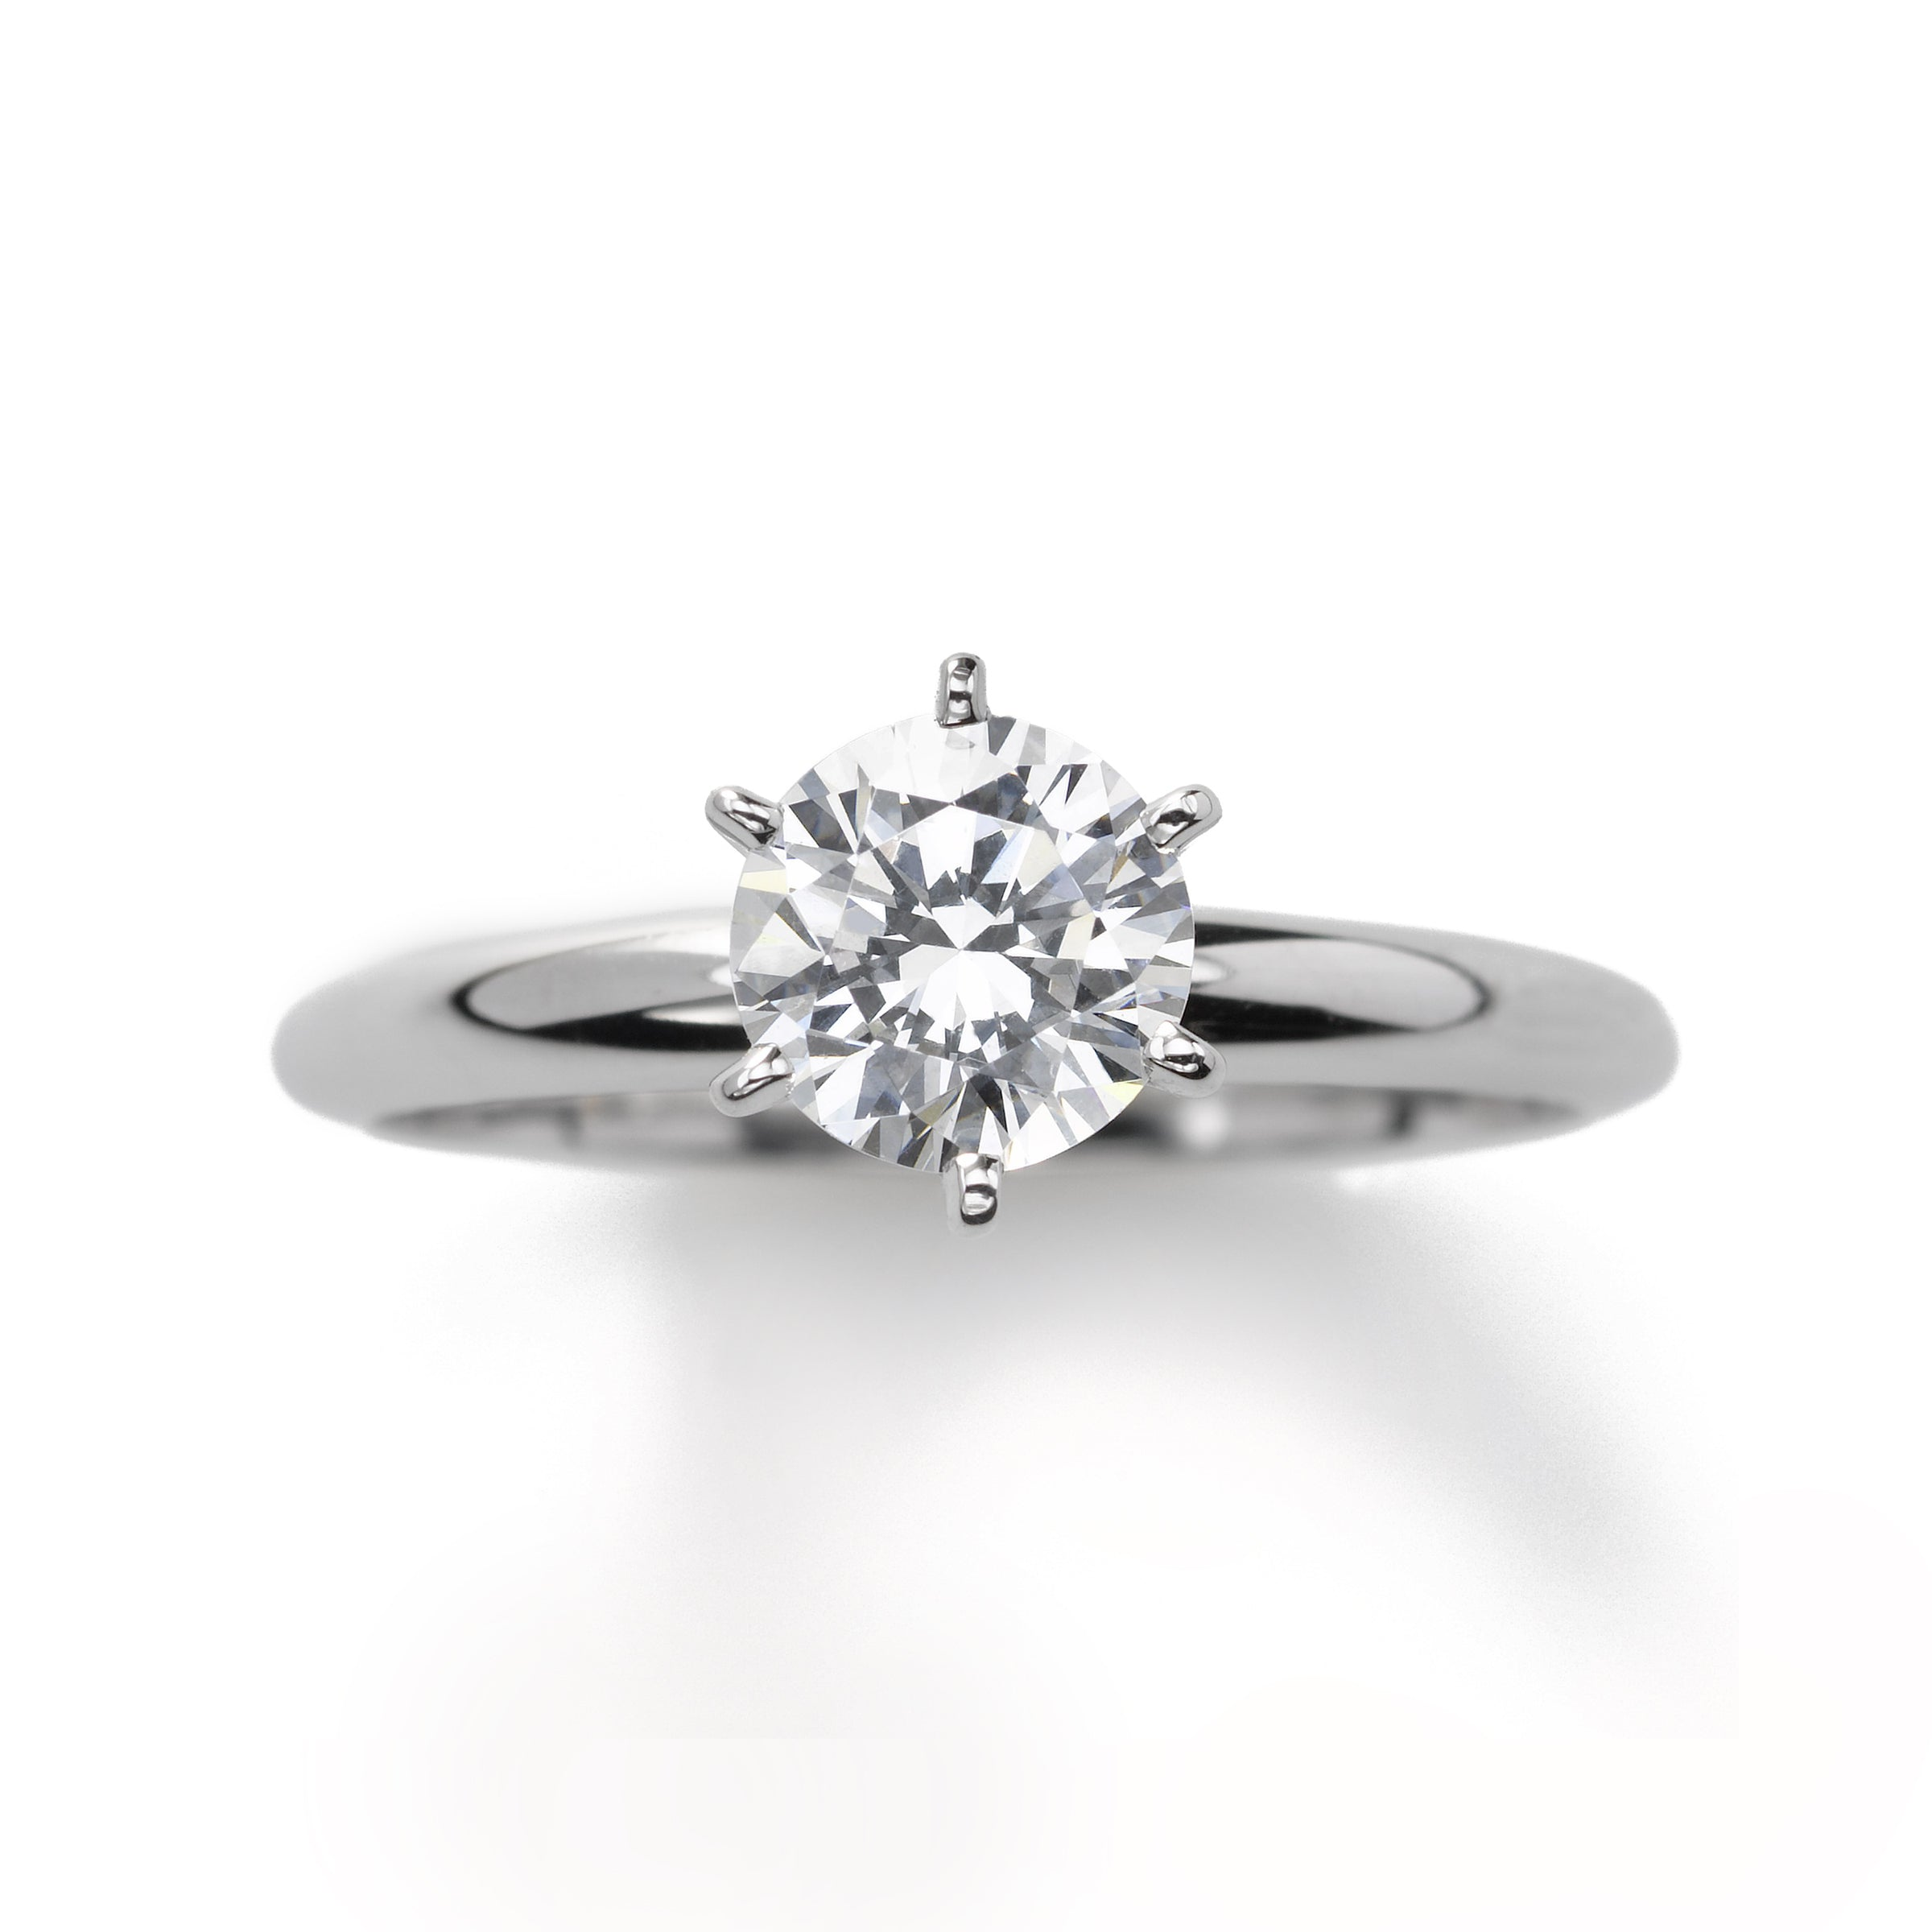 Classic 1.25 Carat Diamond Engagement Ring, 14K White Gold